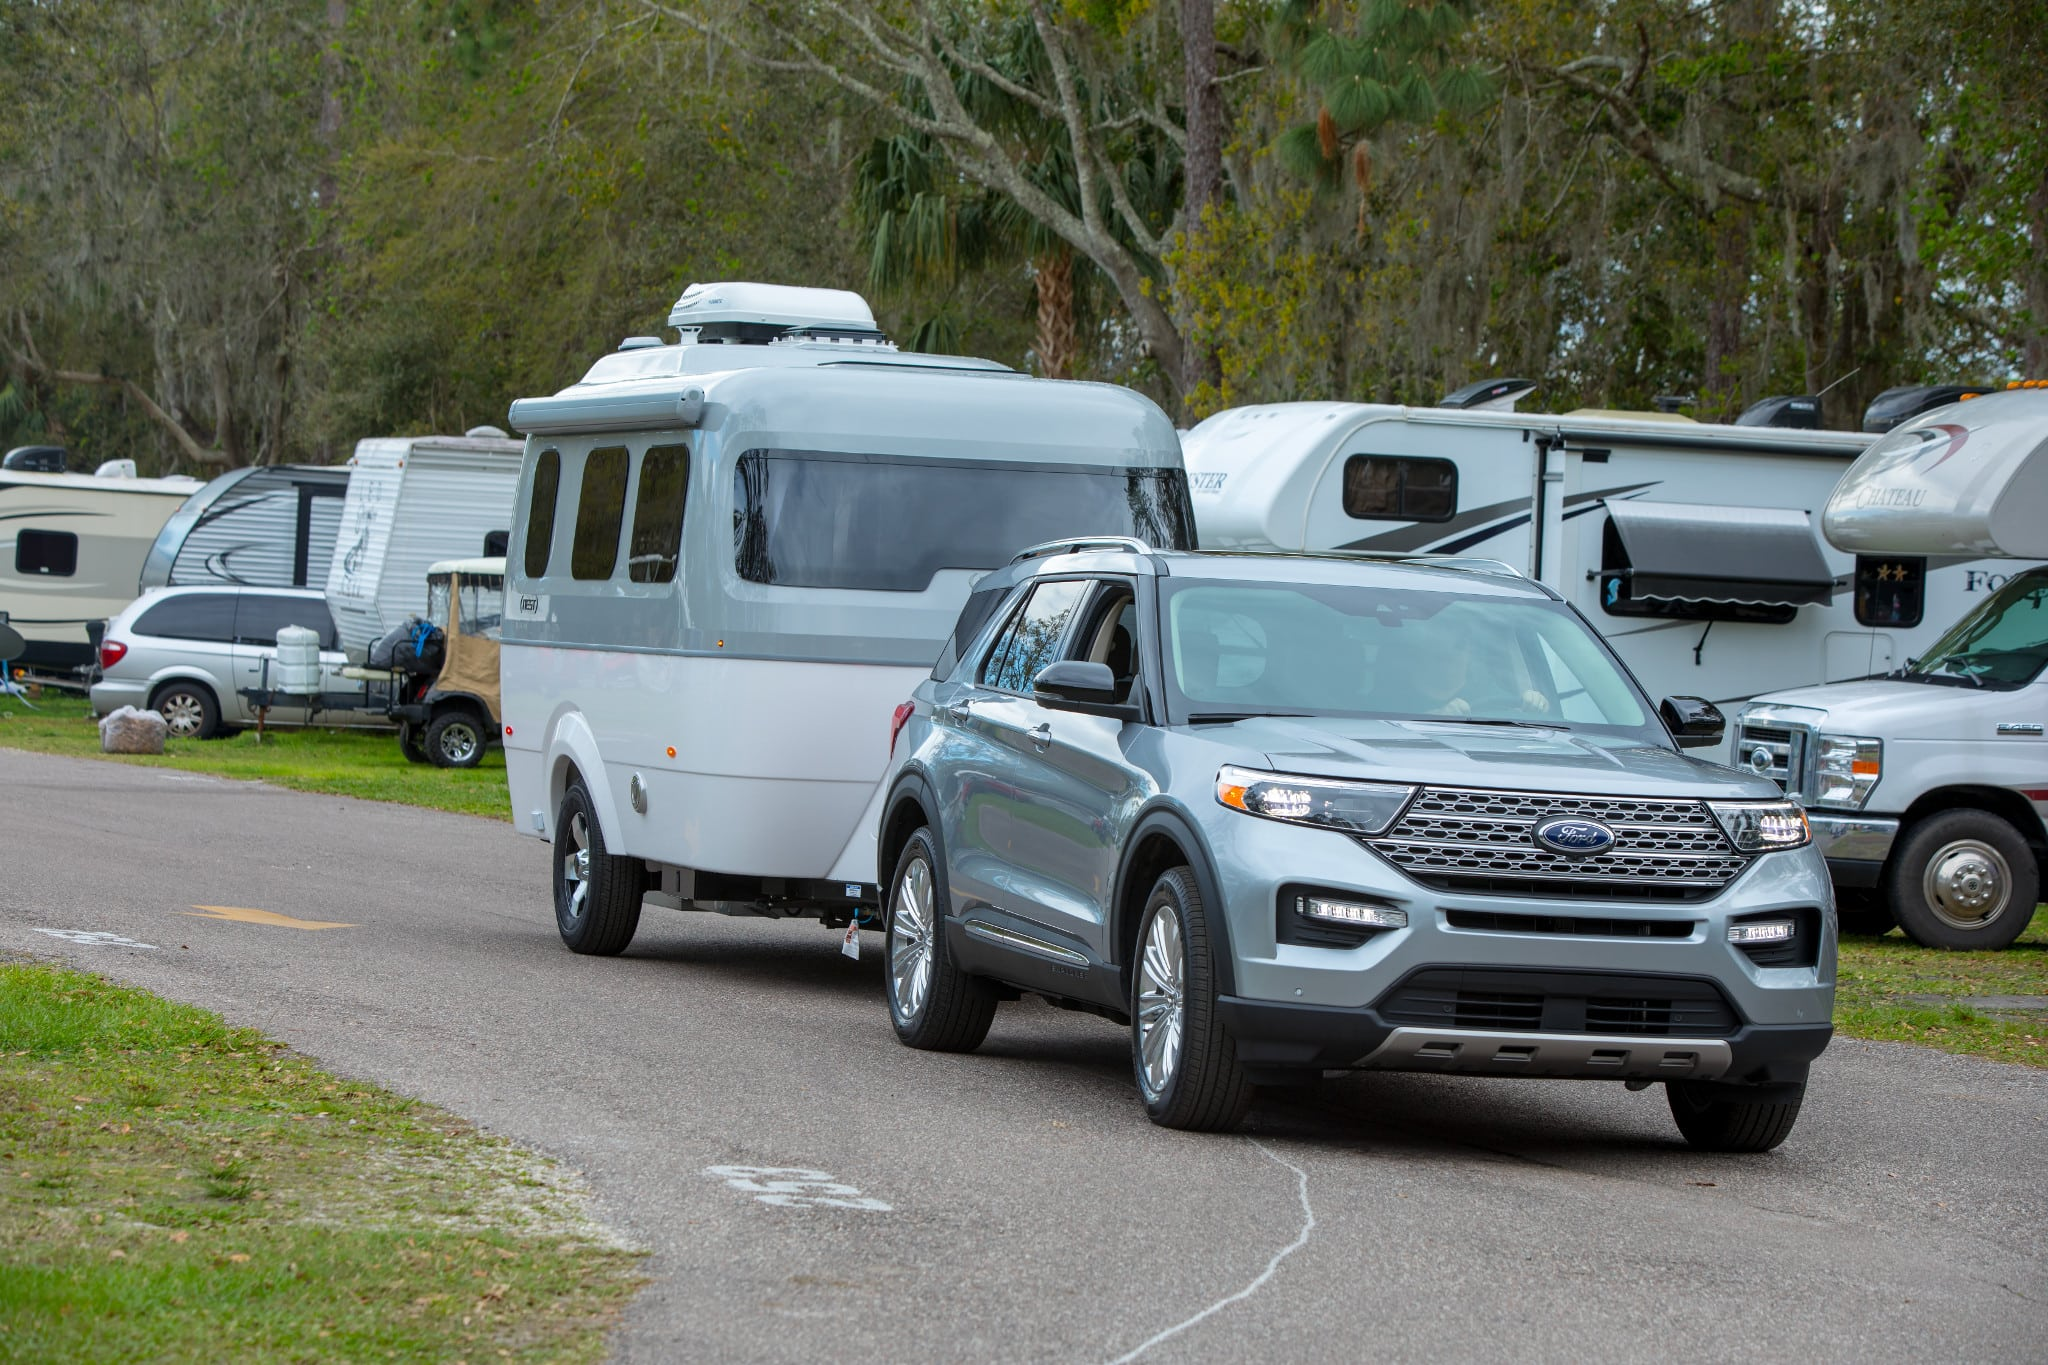 Can You Tow a Fifth-Wheel RV With a Half-Ton Pickup Truck? - Camping